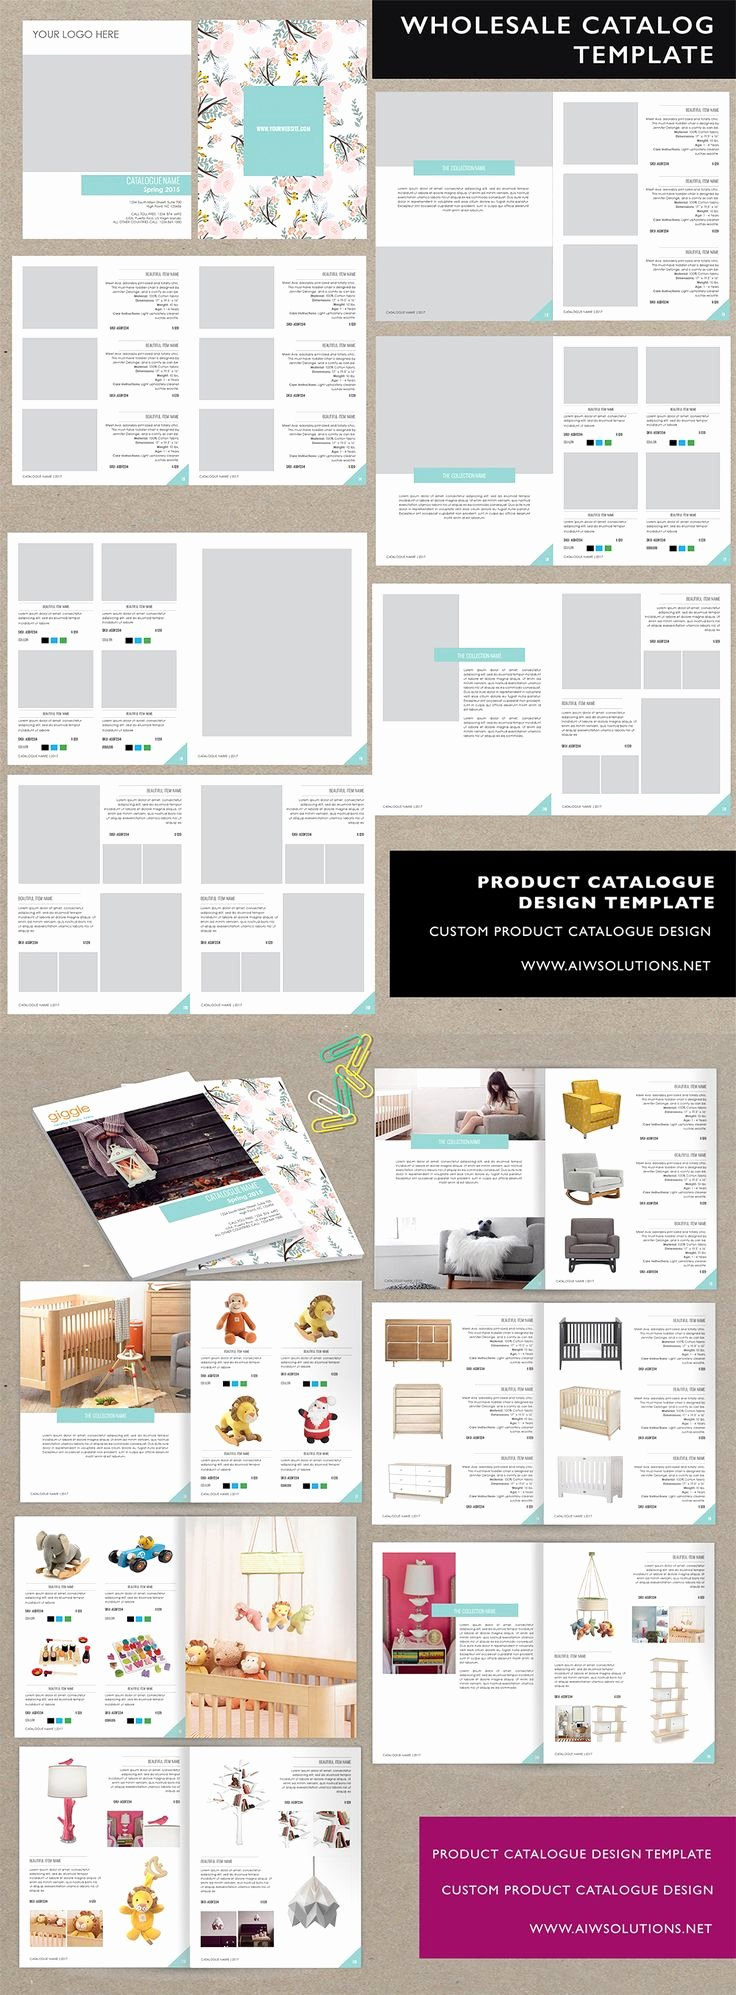 Product Catalog Design Template Luxury 25 Best Ideas About Product Catalog Template On Pinterest